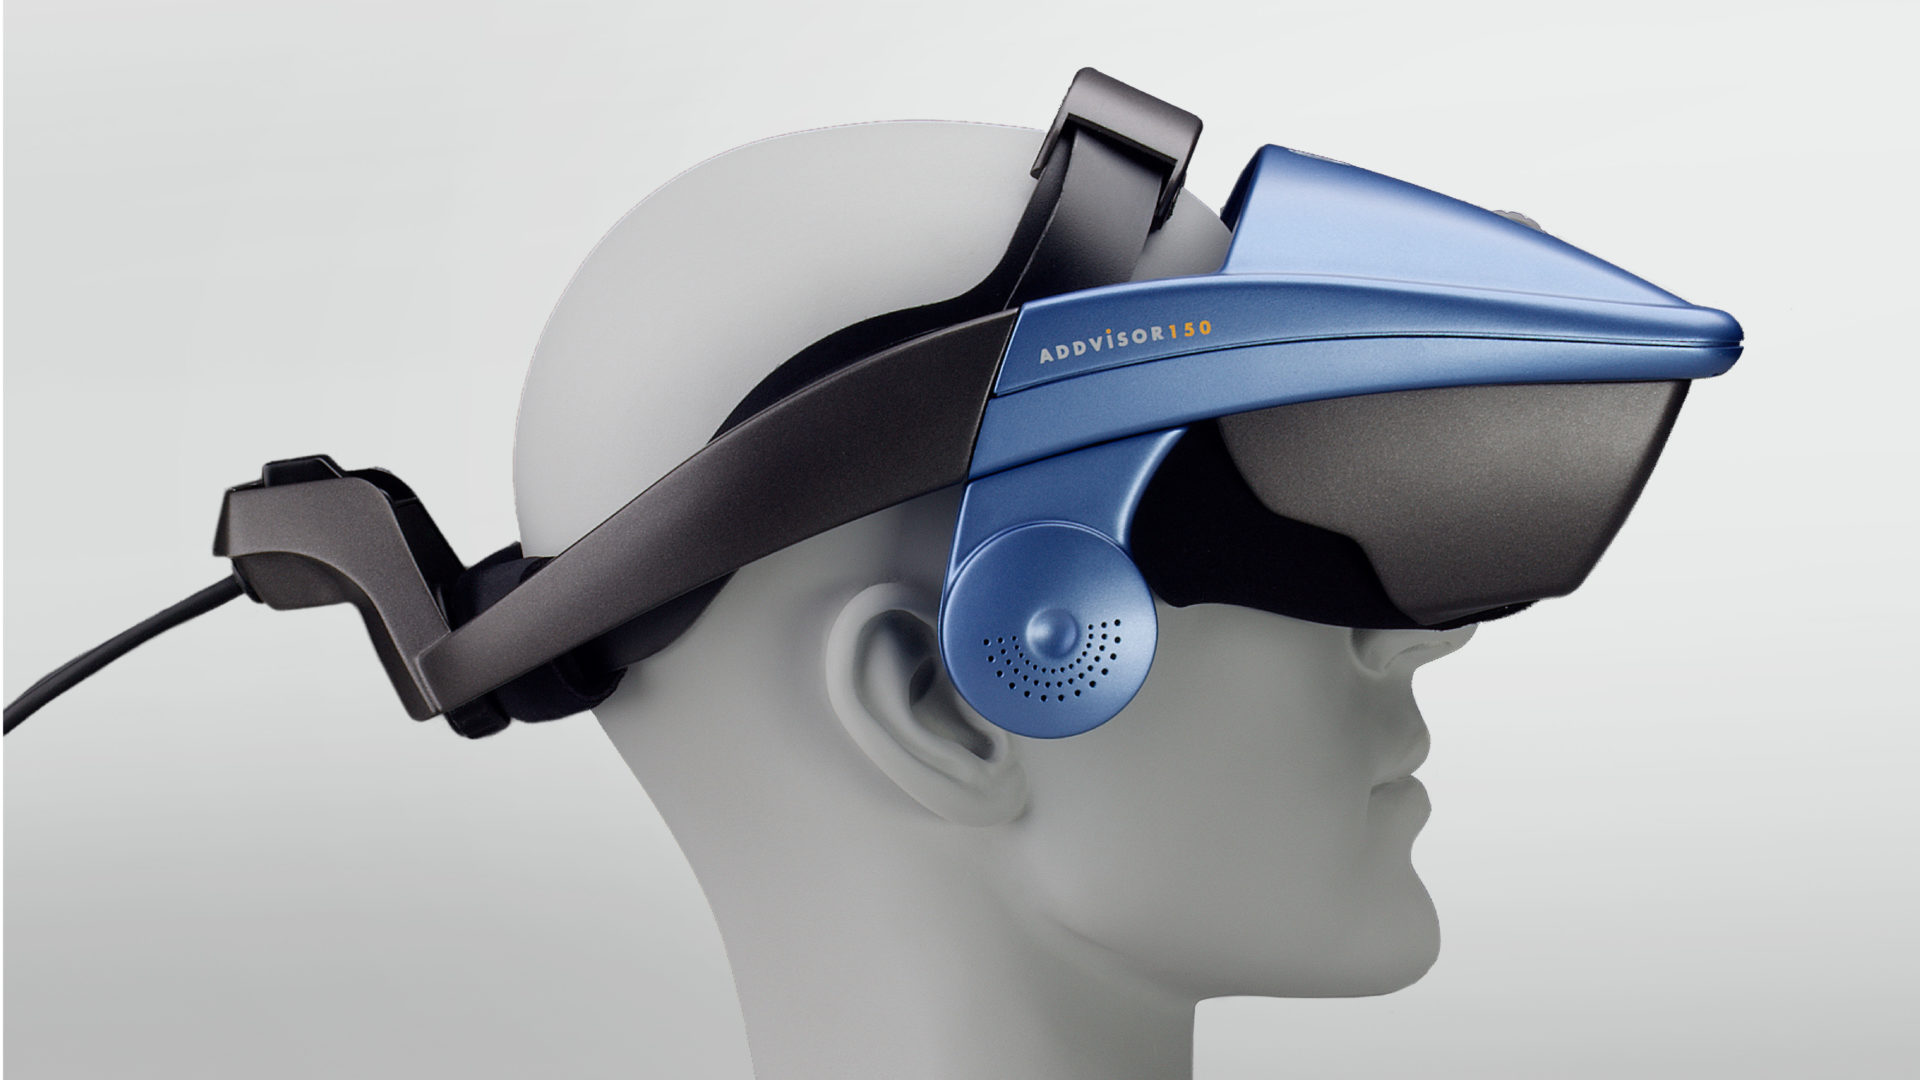 Addvisor 150 Head-Mounted Display